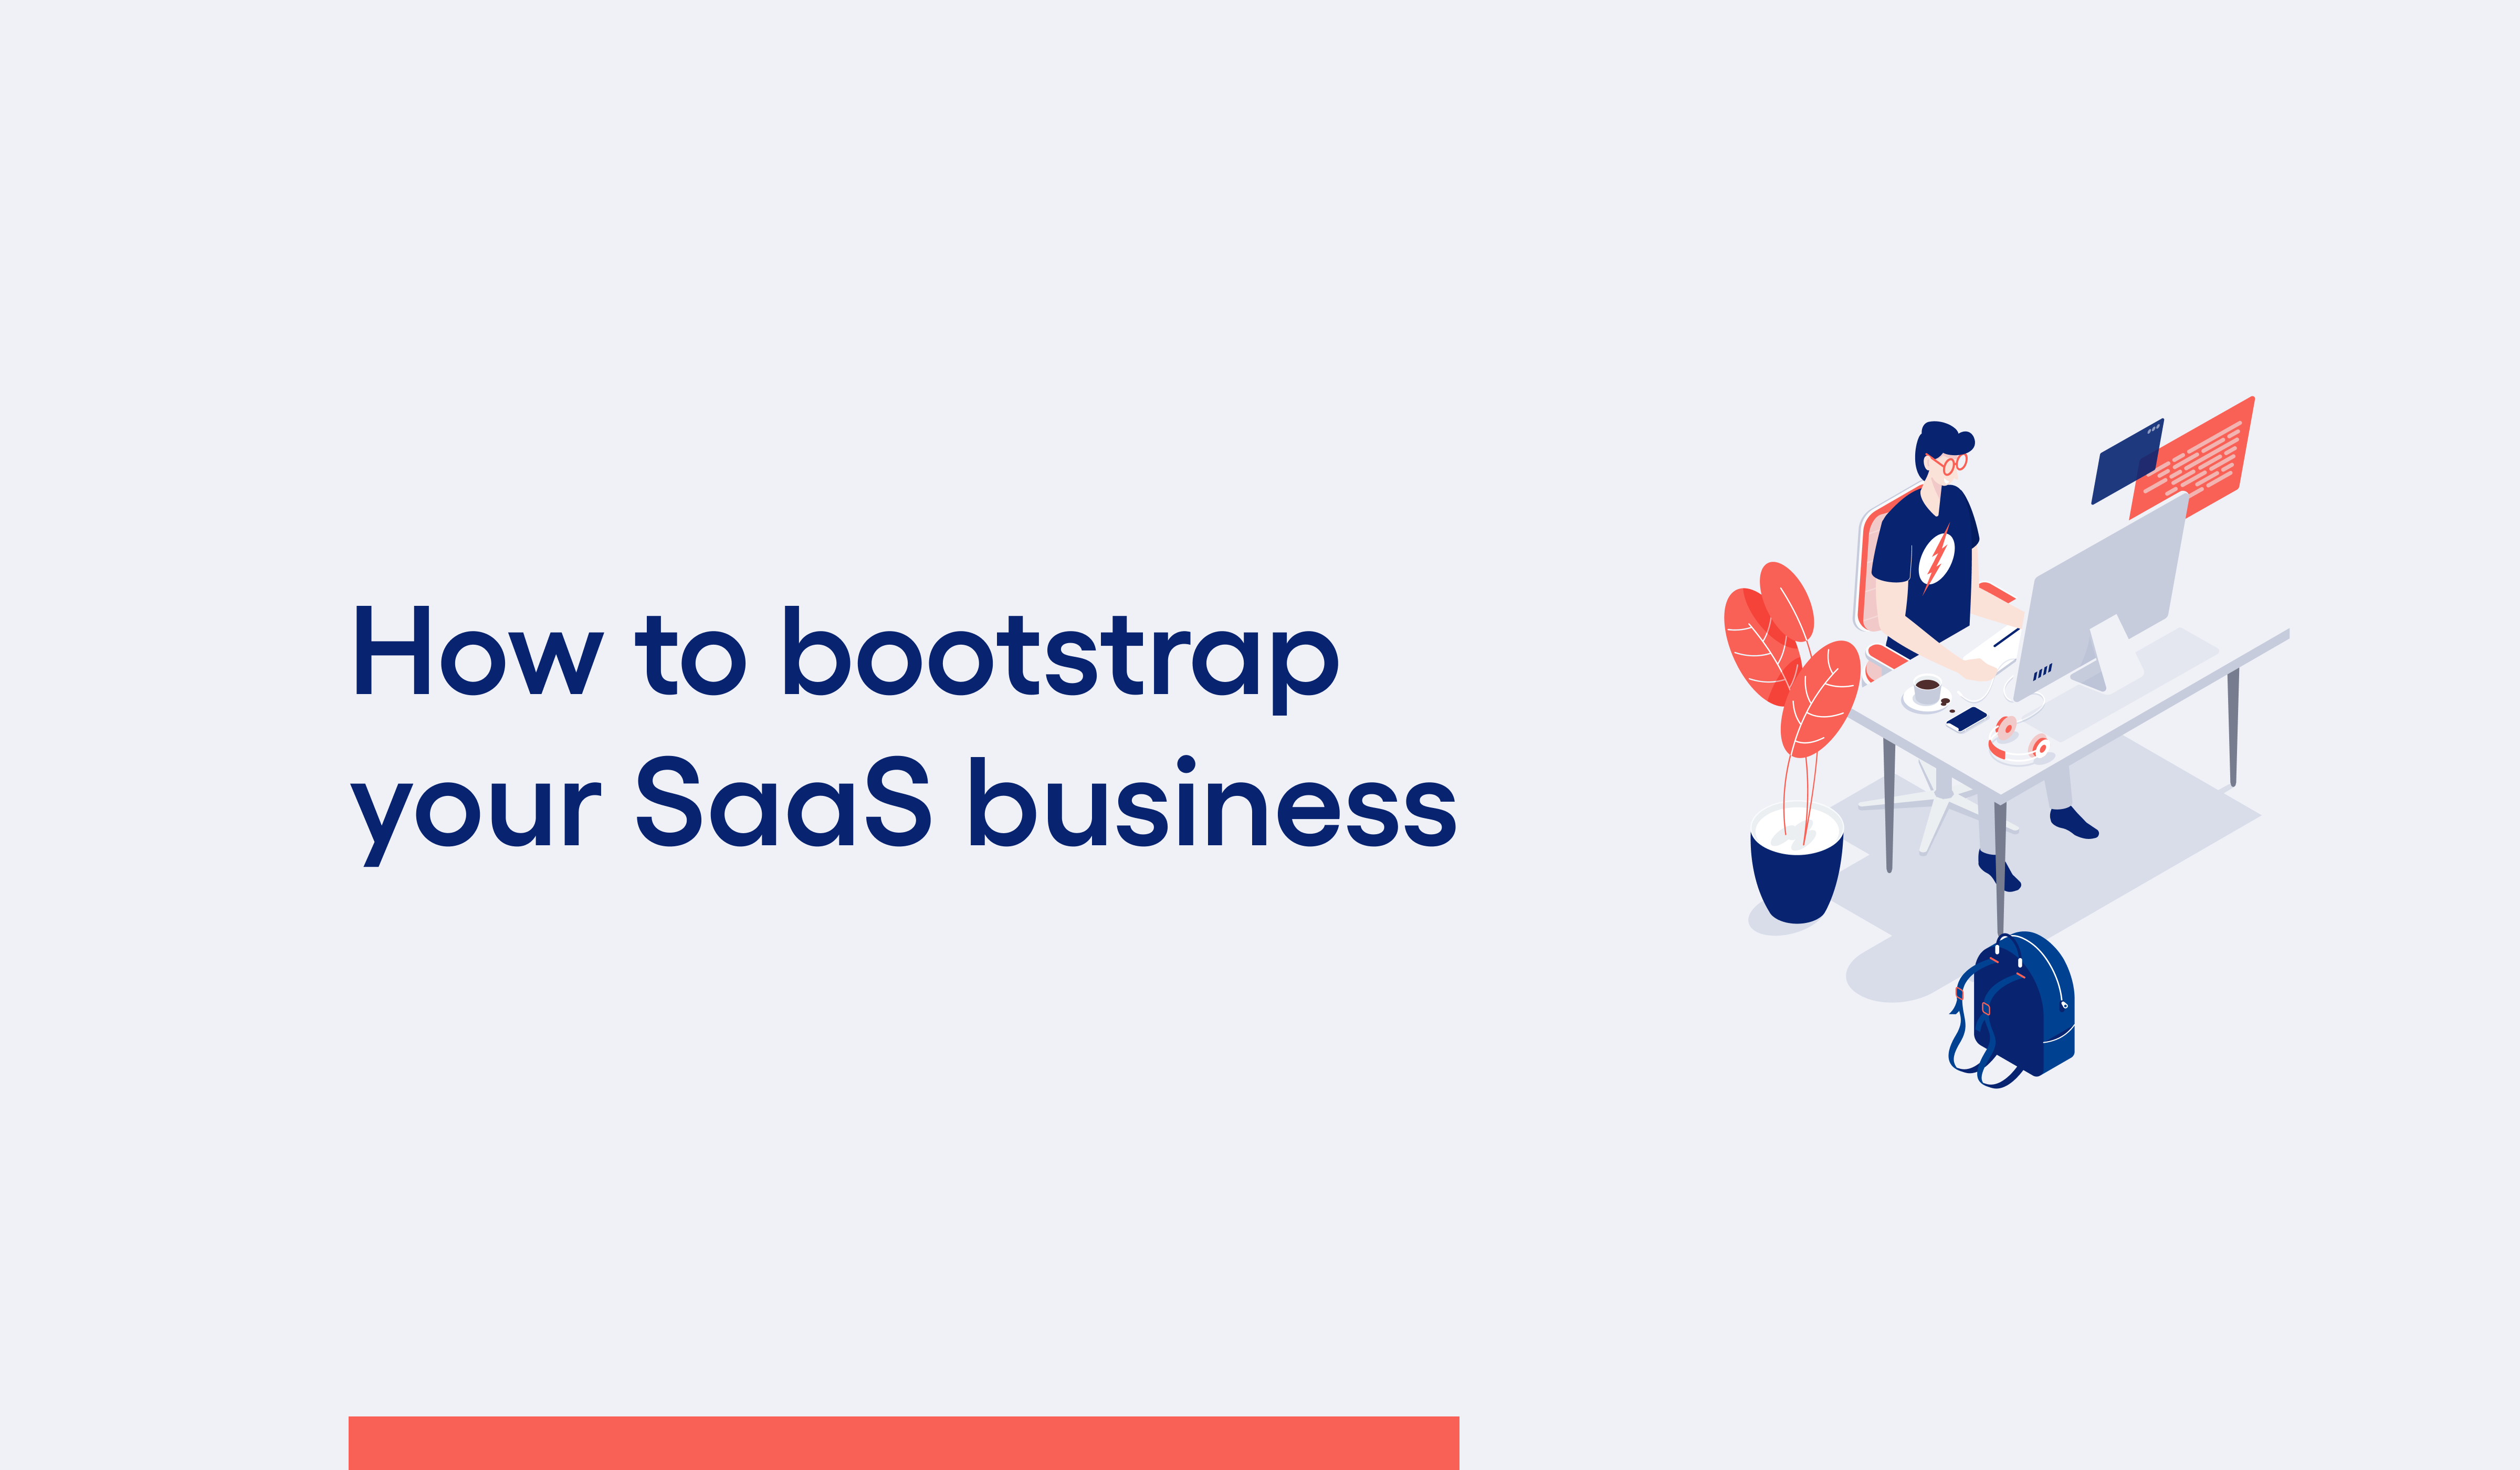 How to bootstrap your SaaS business